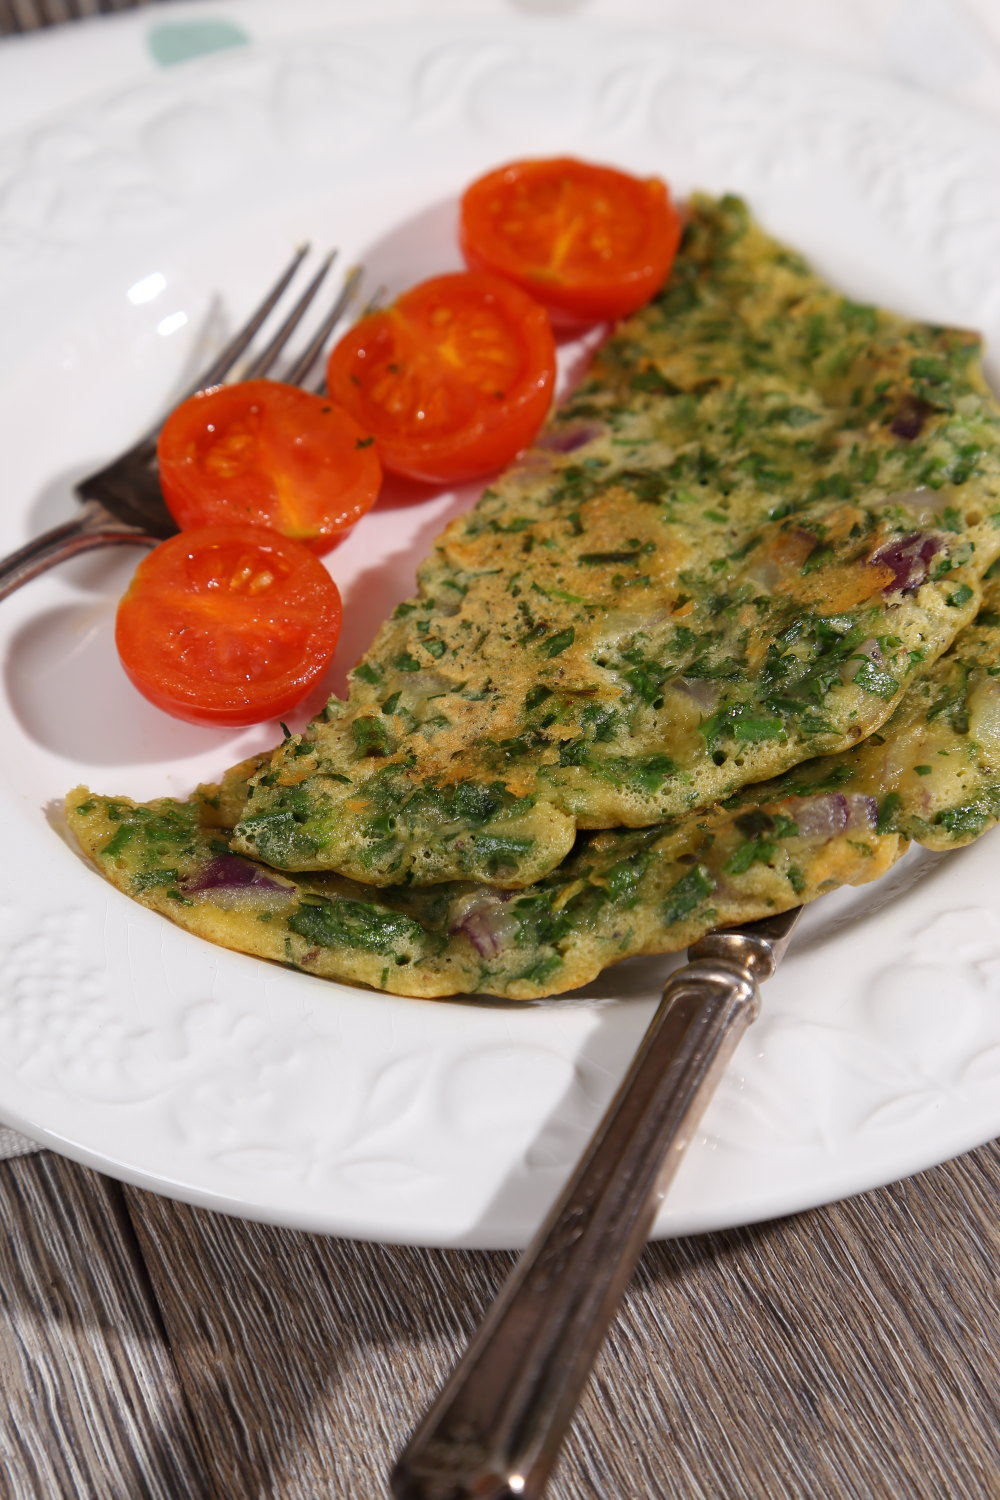 Herby Vegan Omelette with Parsley and Chives